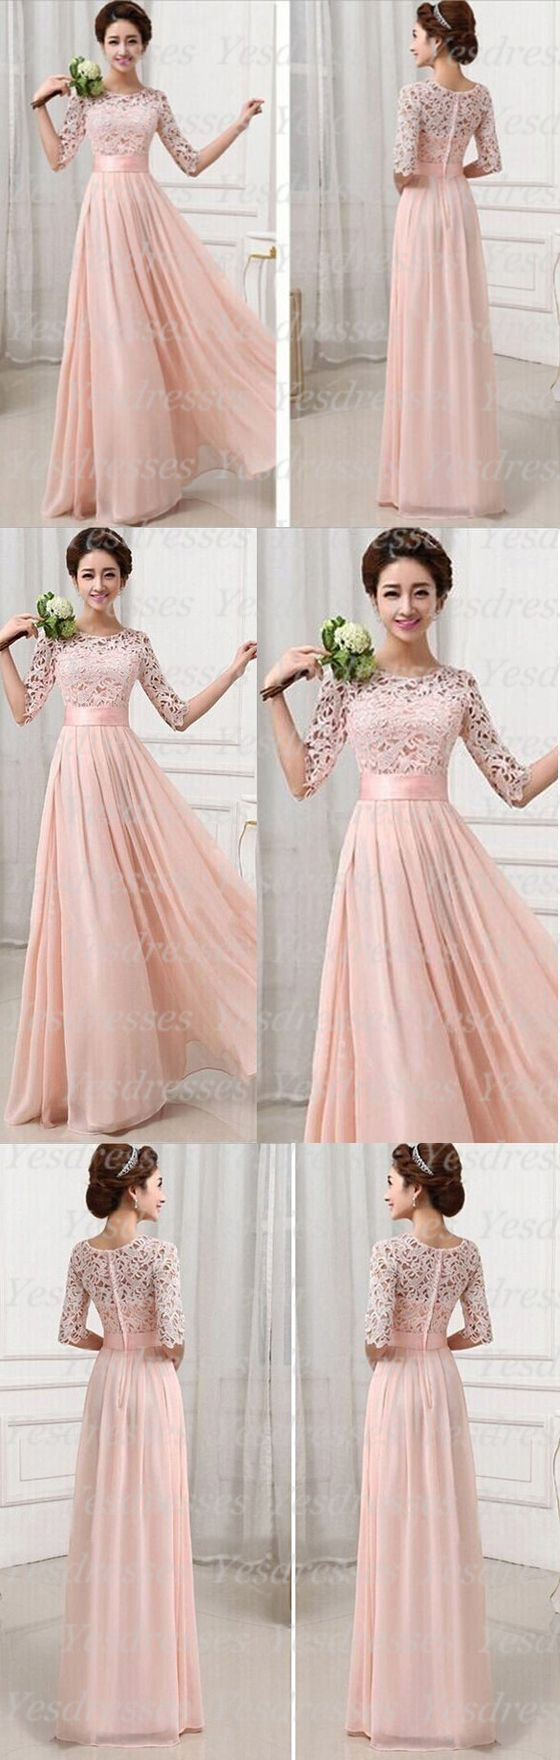 Best 25 long chiffon bridesmaid dresses ideas on pinterest the bridesmaid dress is fully lined 4 bones in the bodice chest pad in the bust lace up back or zipper back are all available total 126 colors are ombrellifo Images